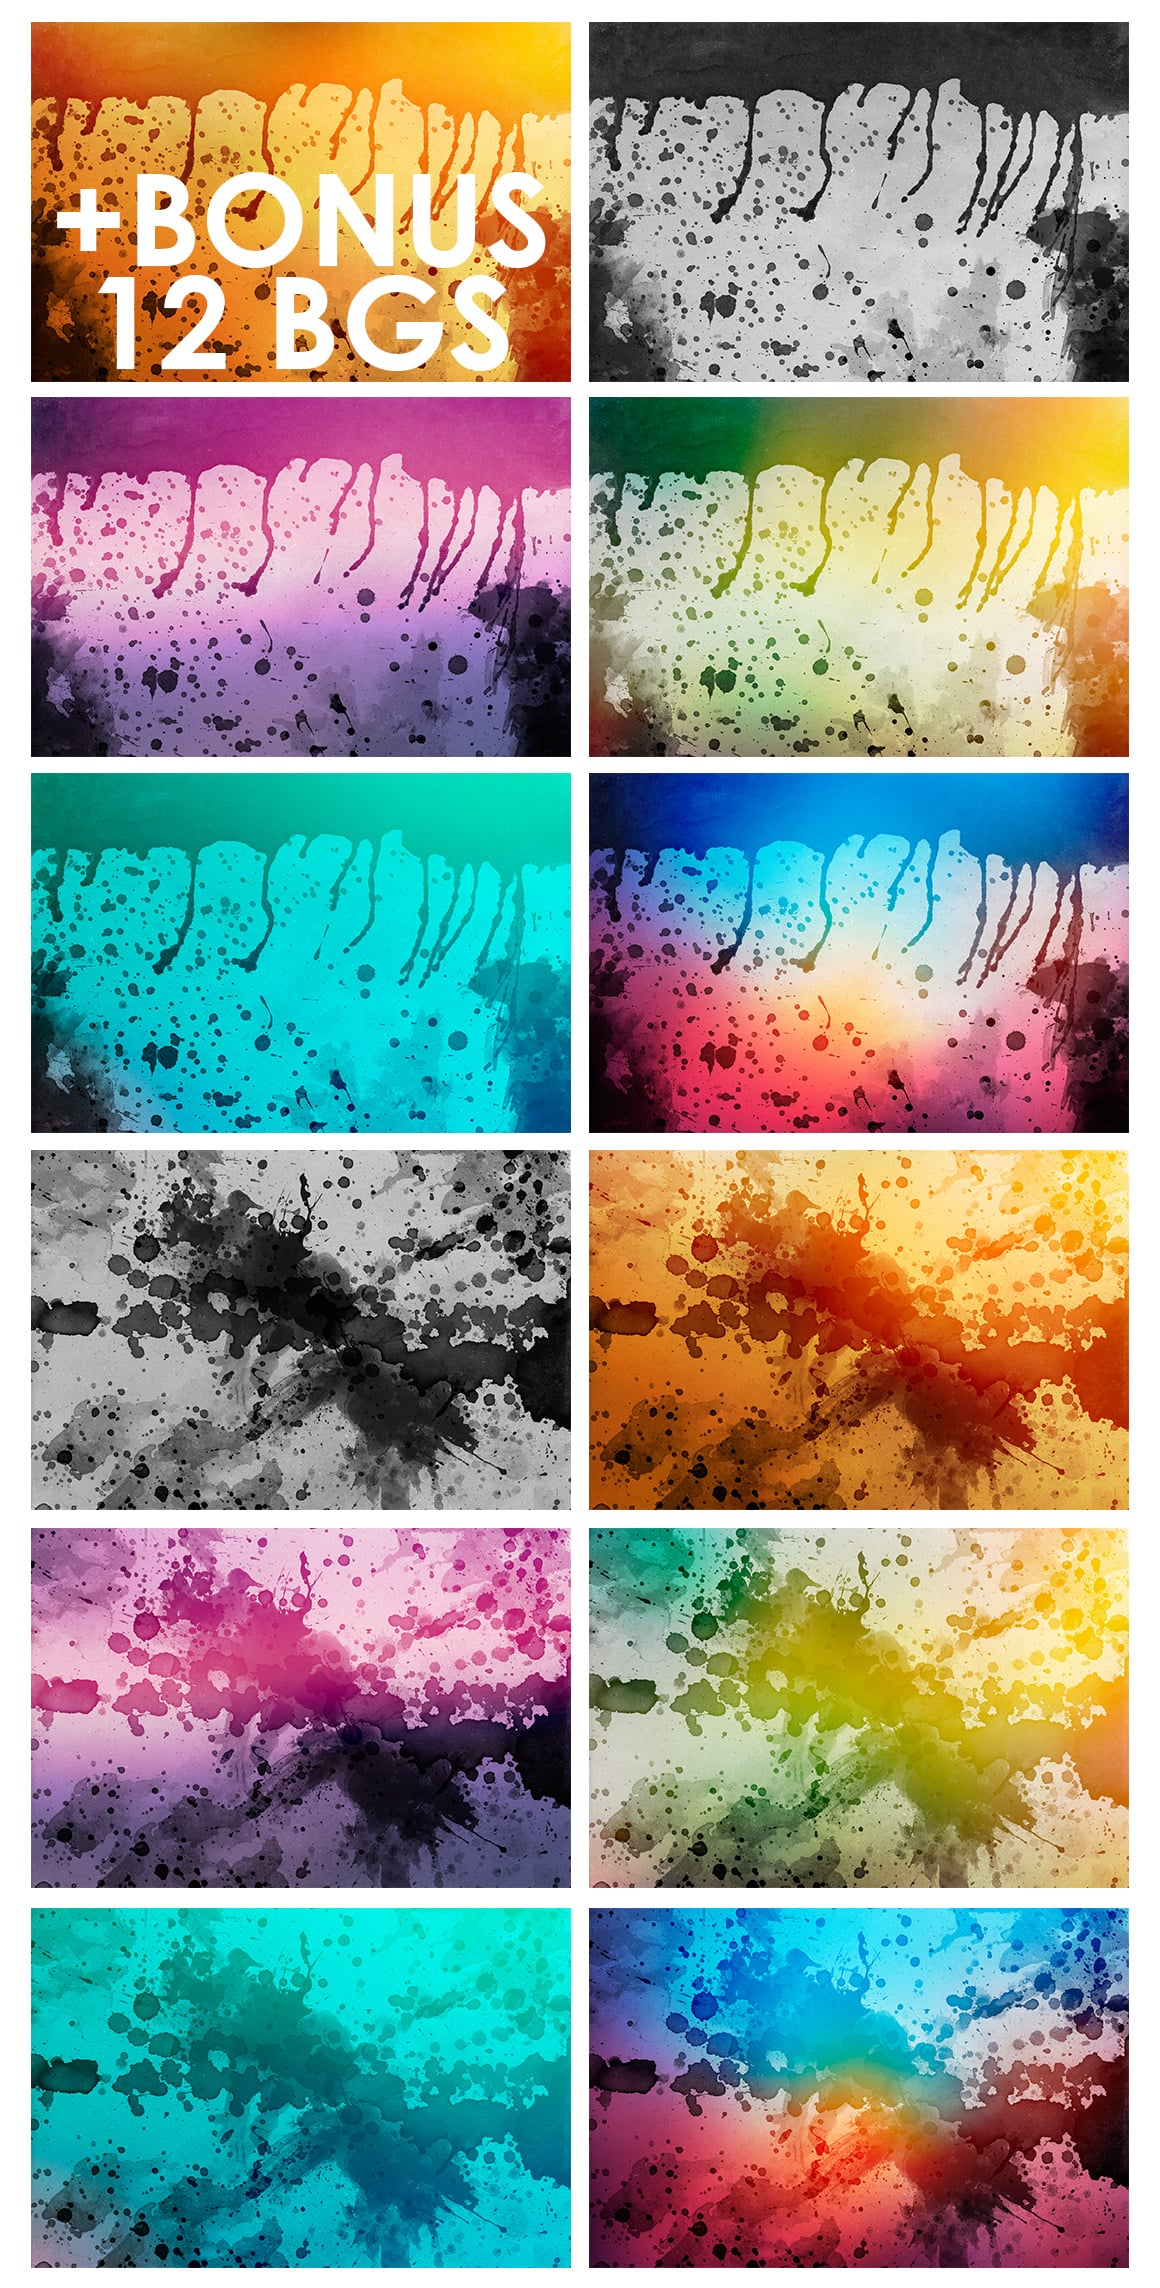 540+ Watercolor Backgrounds Bundle - 544 Items. Only $18! - watercolor backgrounds prev 3 o